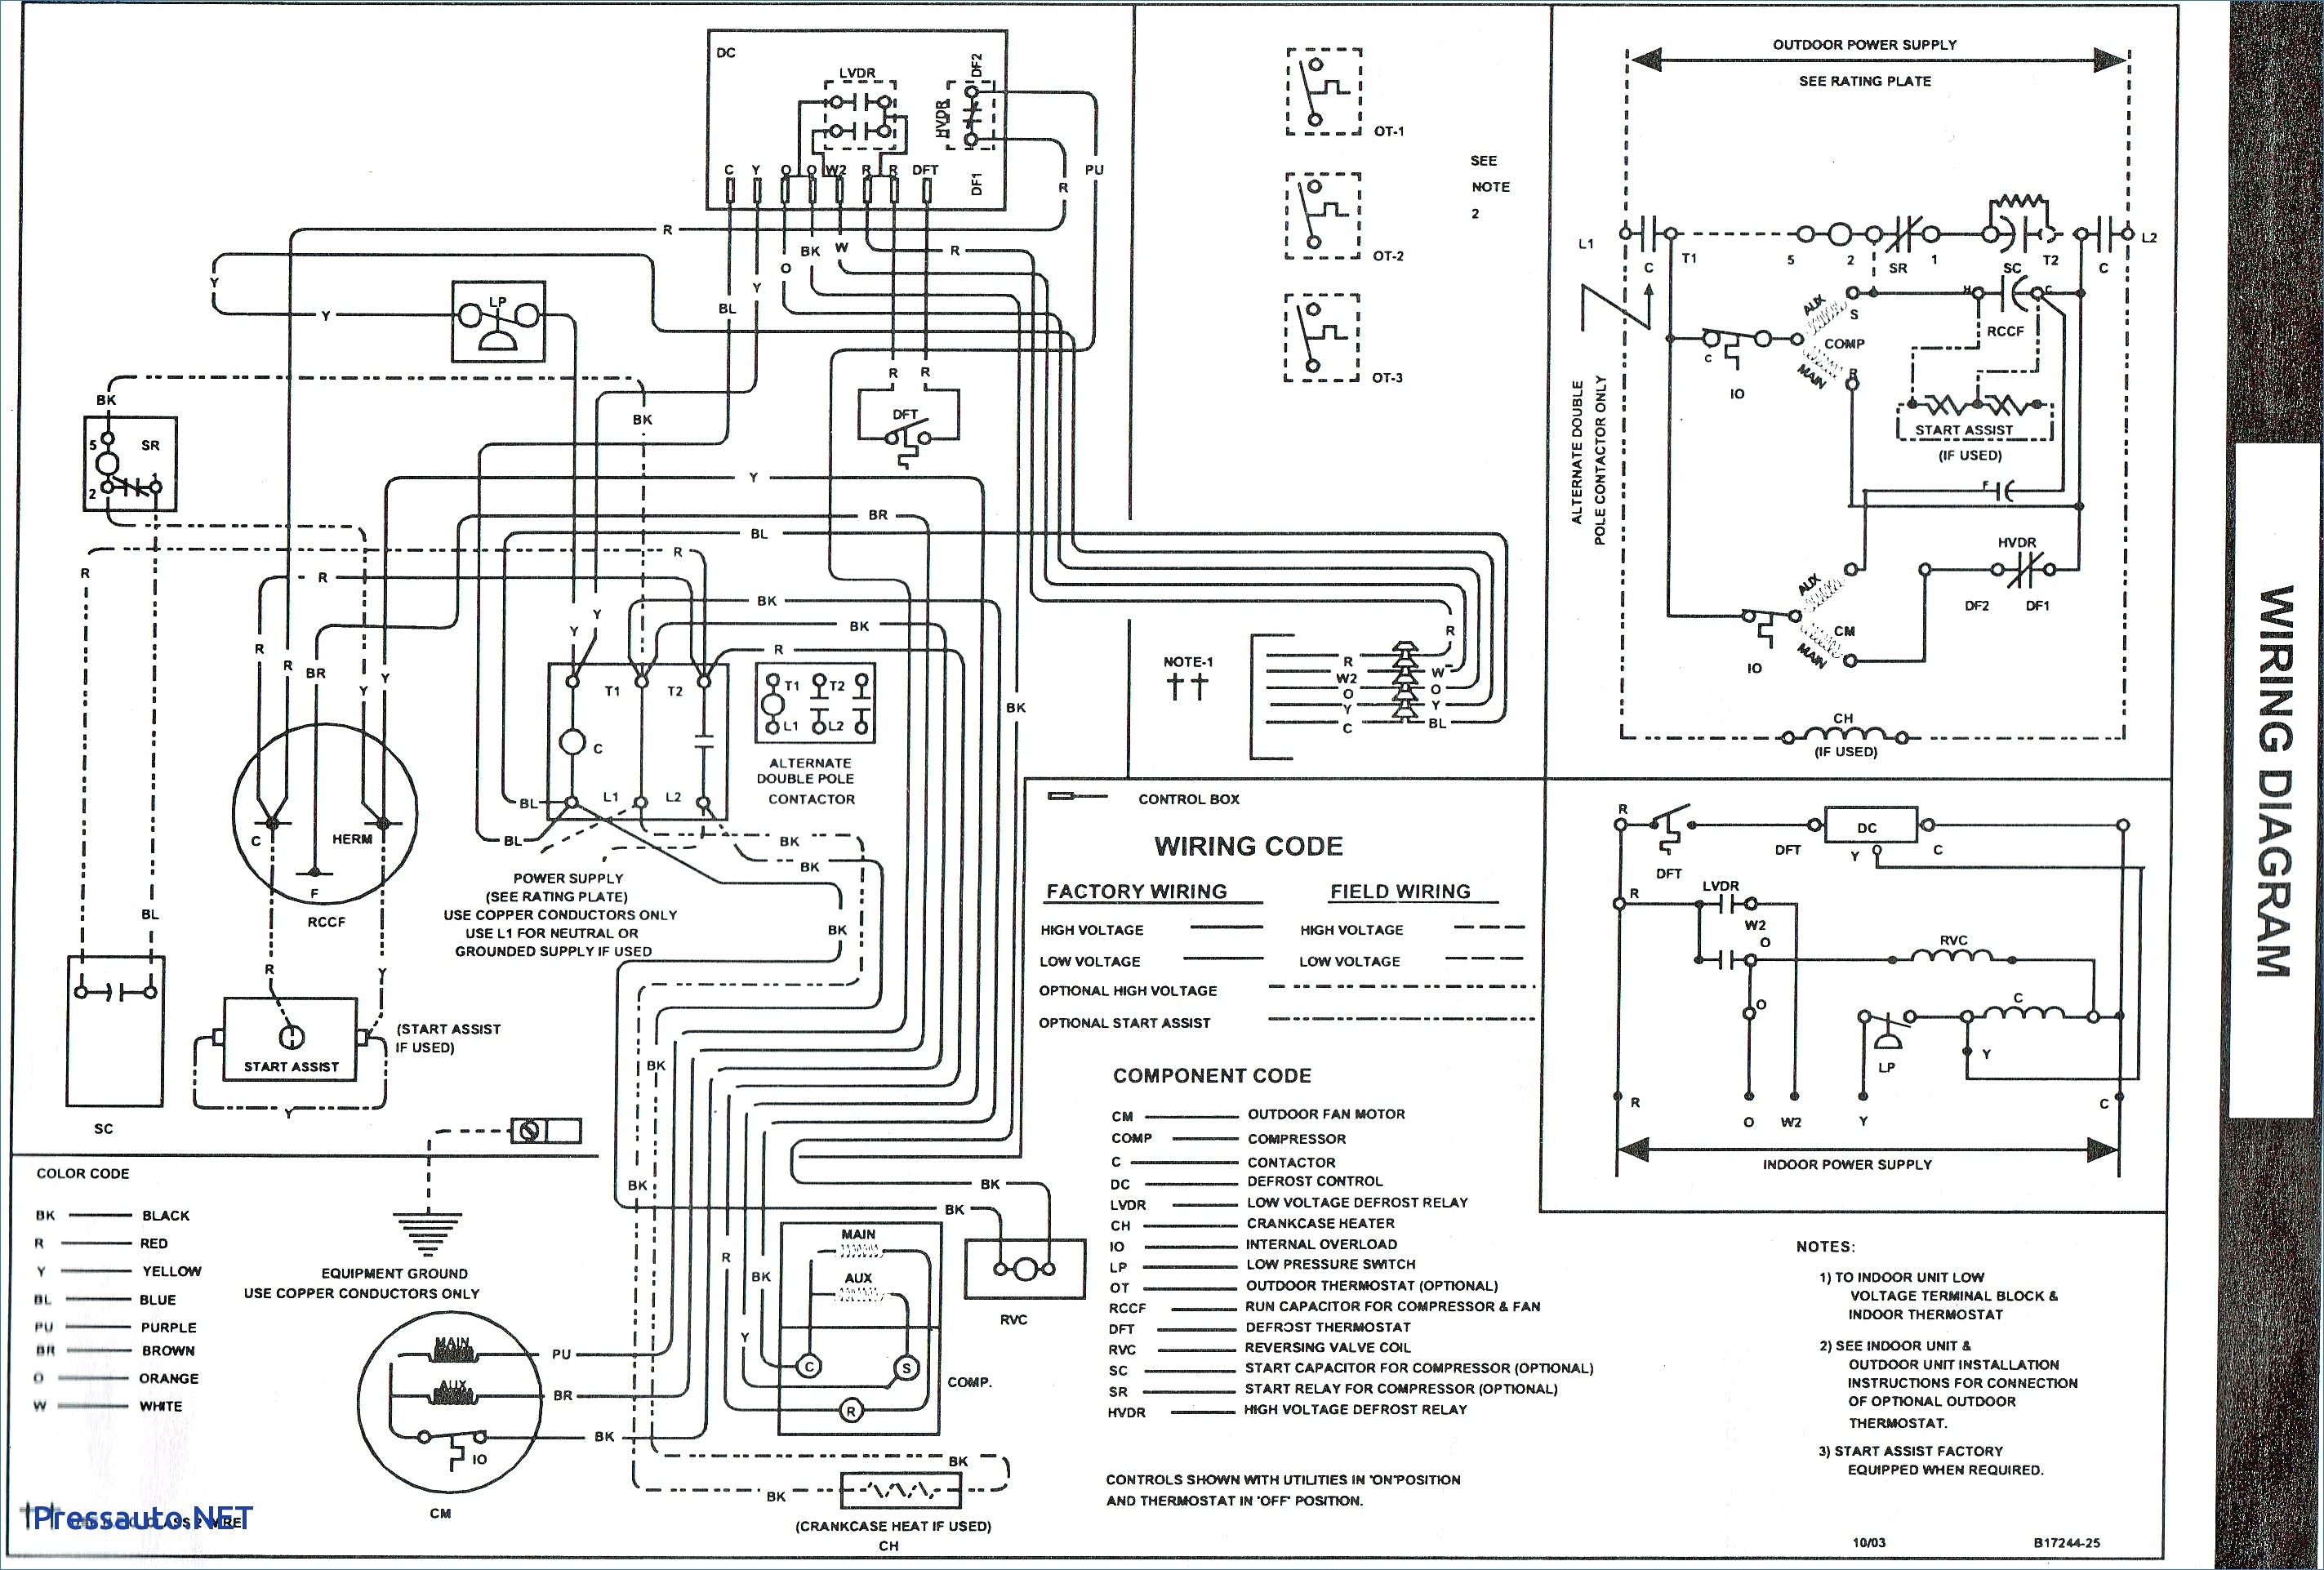 Goodman Furnaces Wiring Diagrams Unique